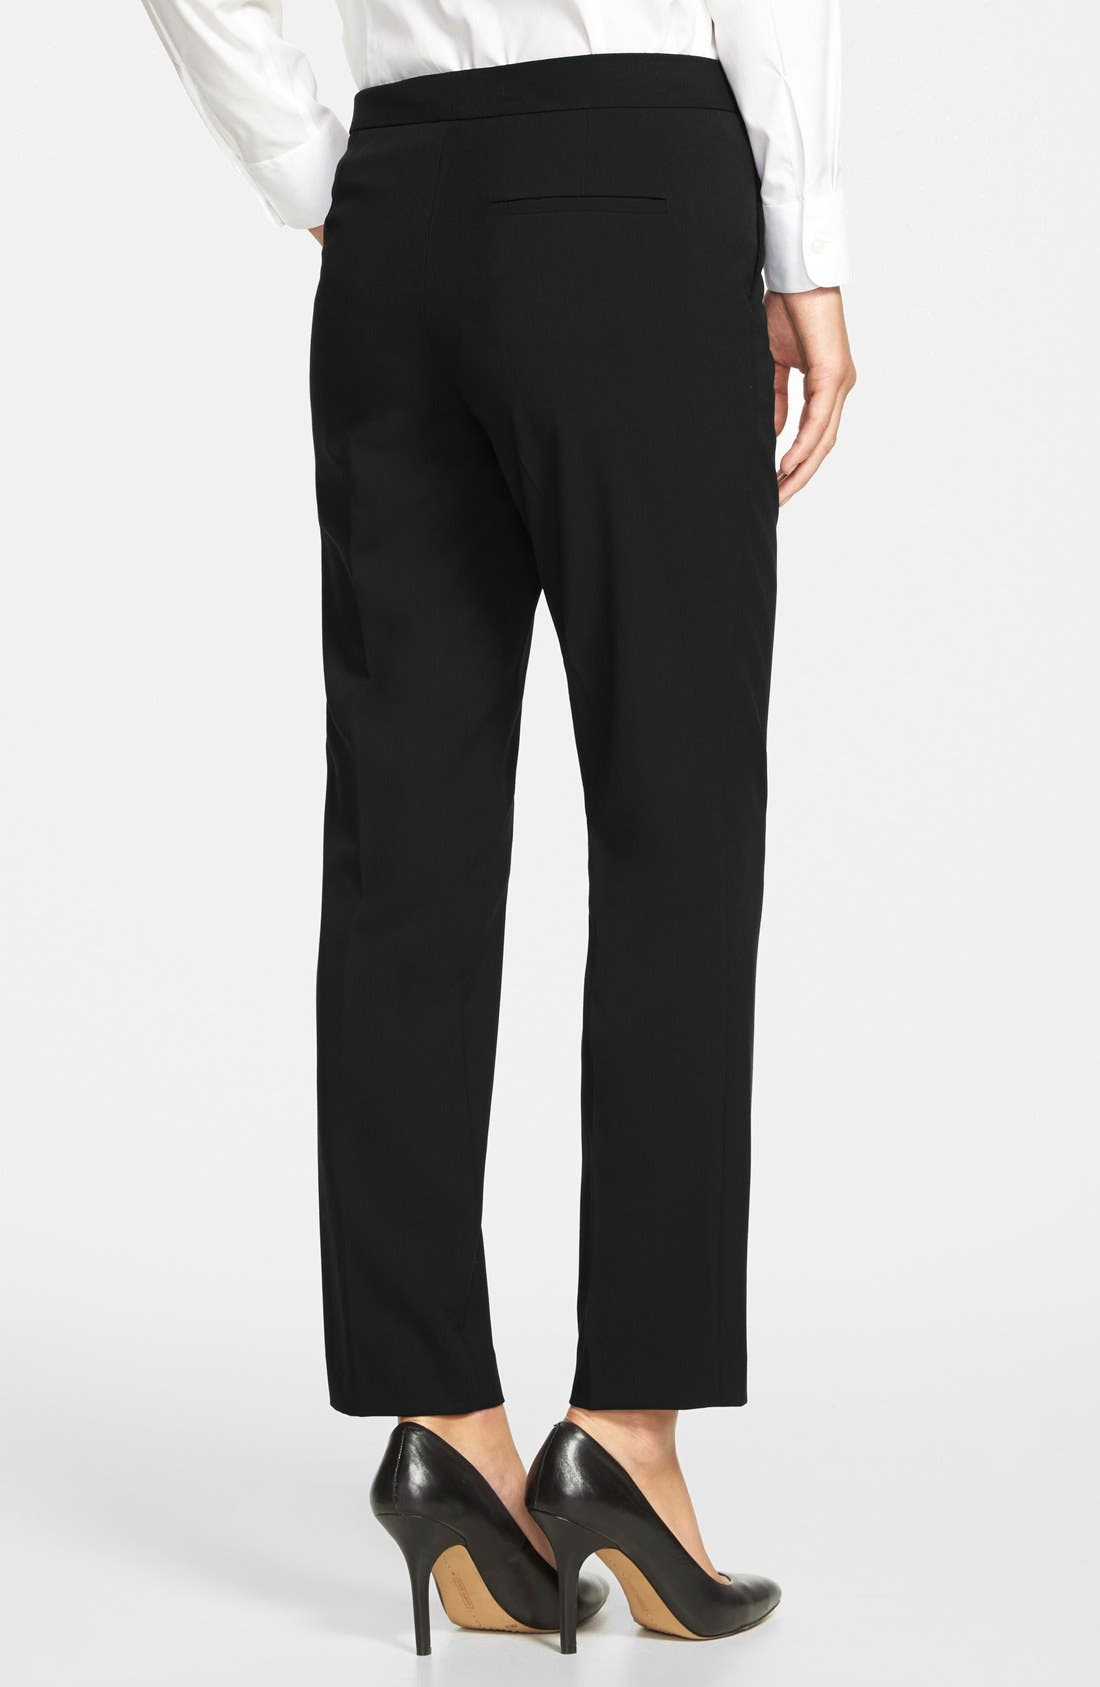 VINCE CAMUTO, Skinny Ankle Pants, Alternate thumbnail 2, color, 001